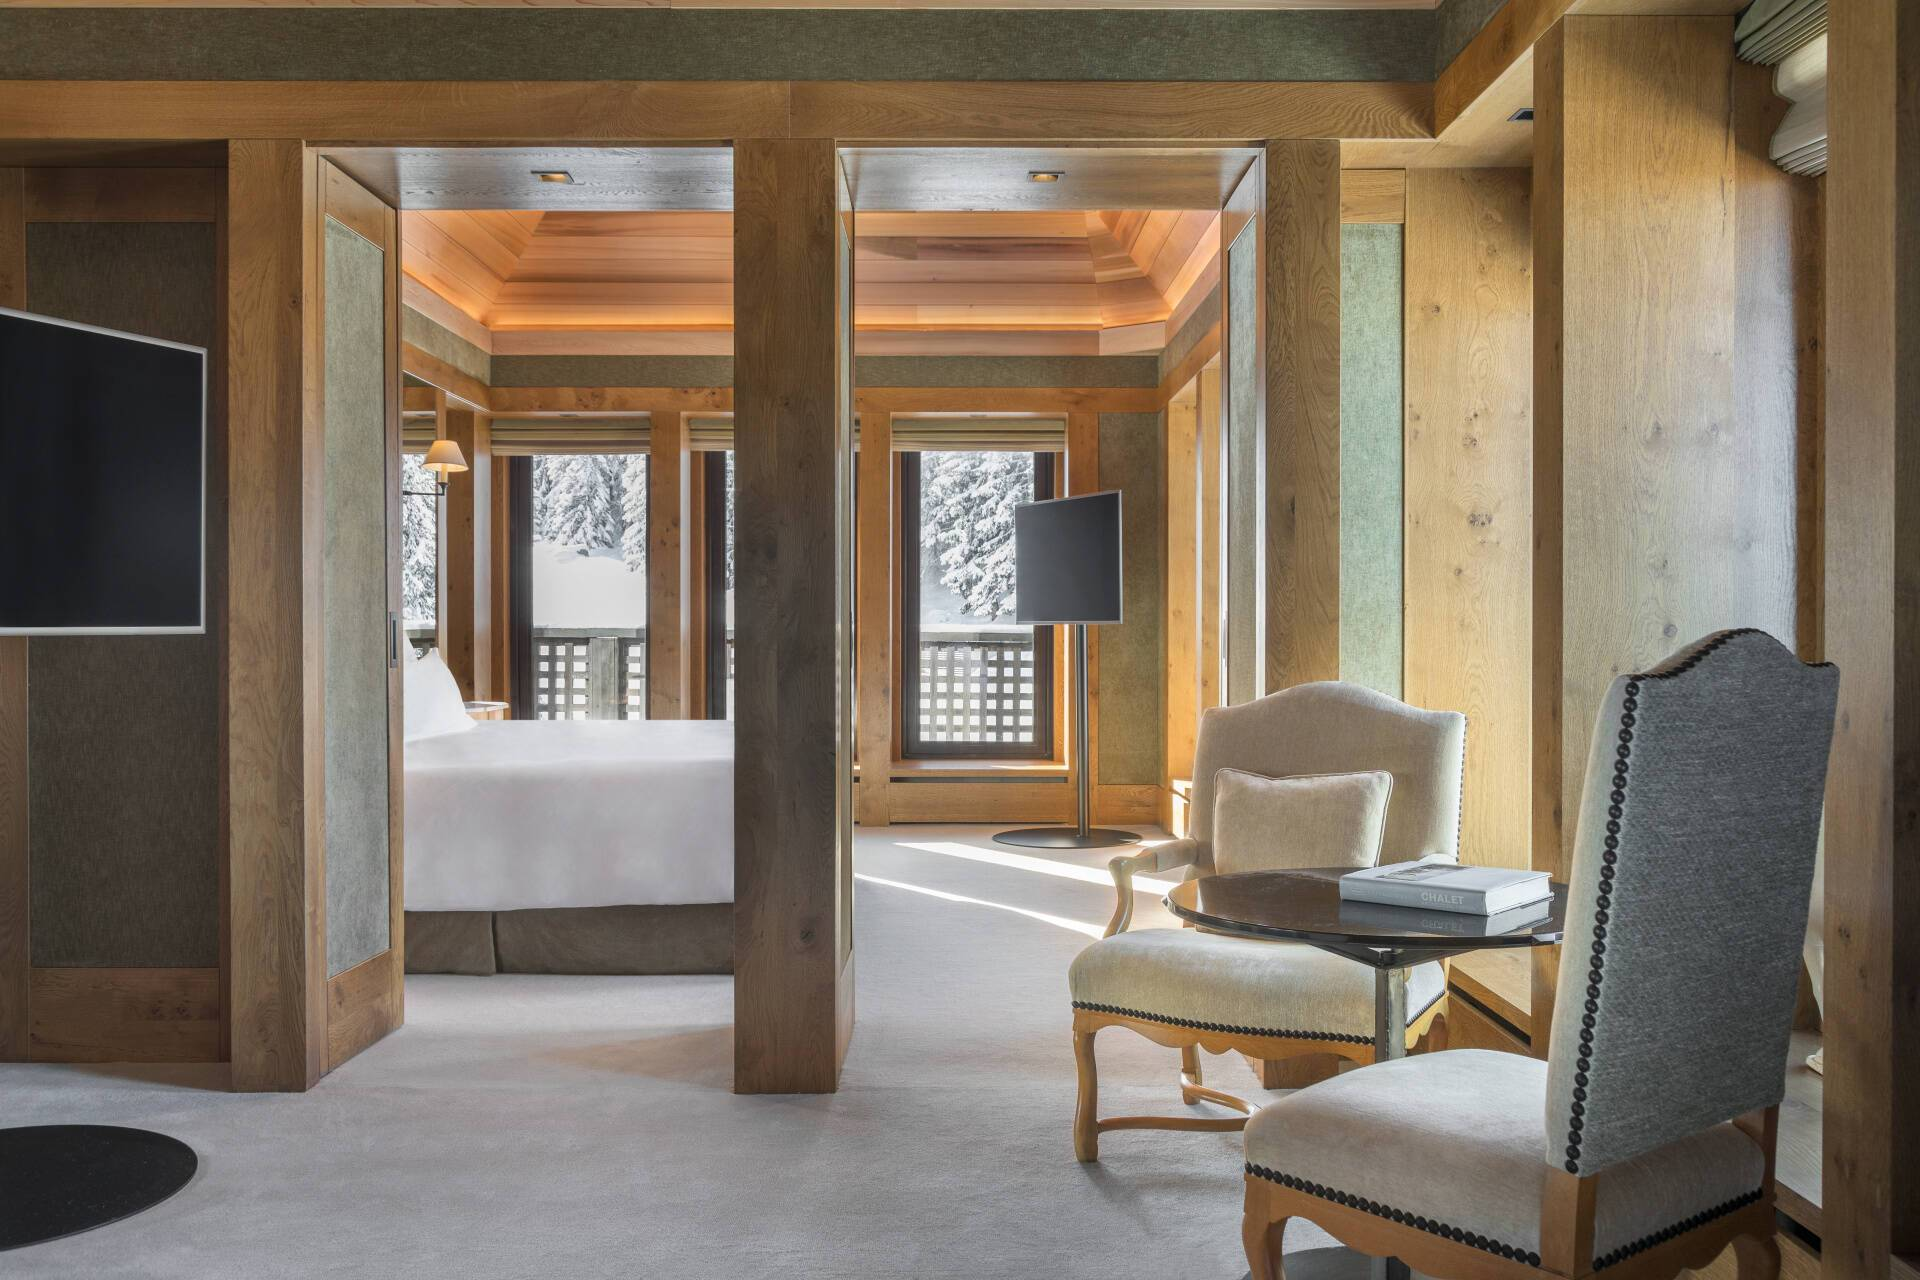 Aman Le Melezin Courchevel Suite